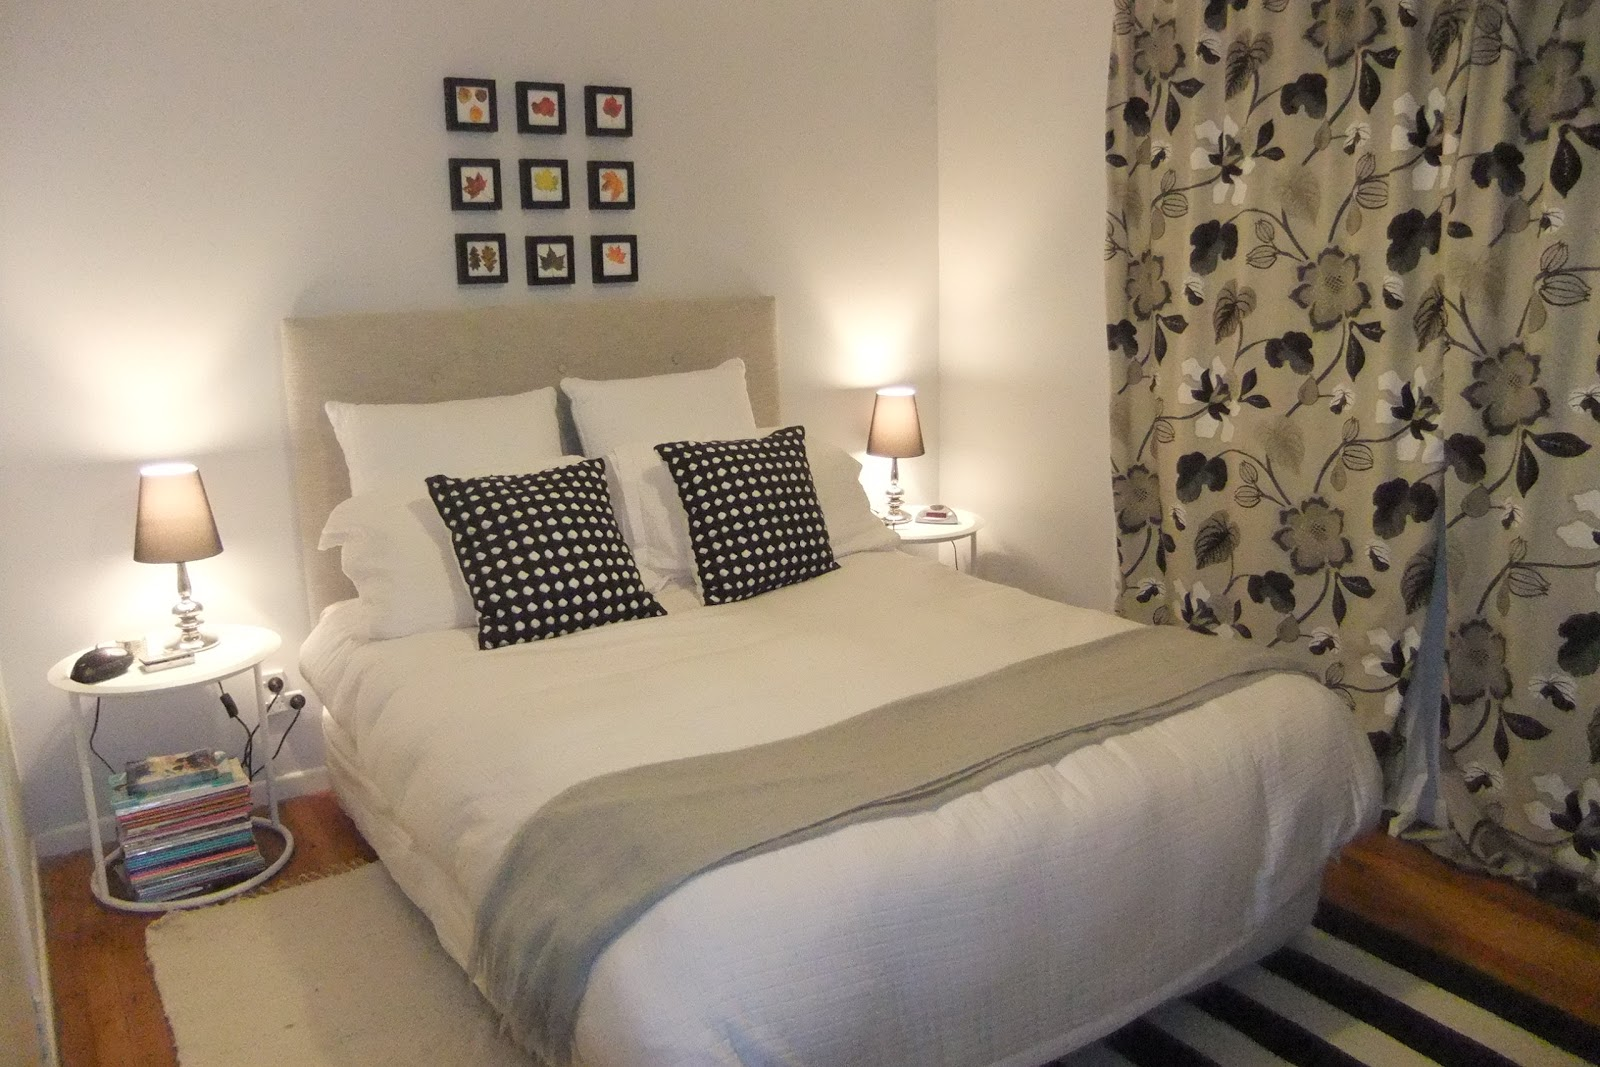 Monday 9 July 2012 & ALL-THINGS-PLEASING: Homemade headboard